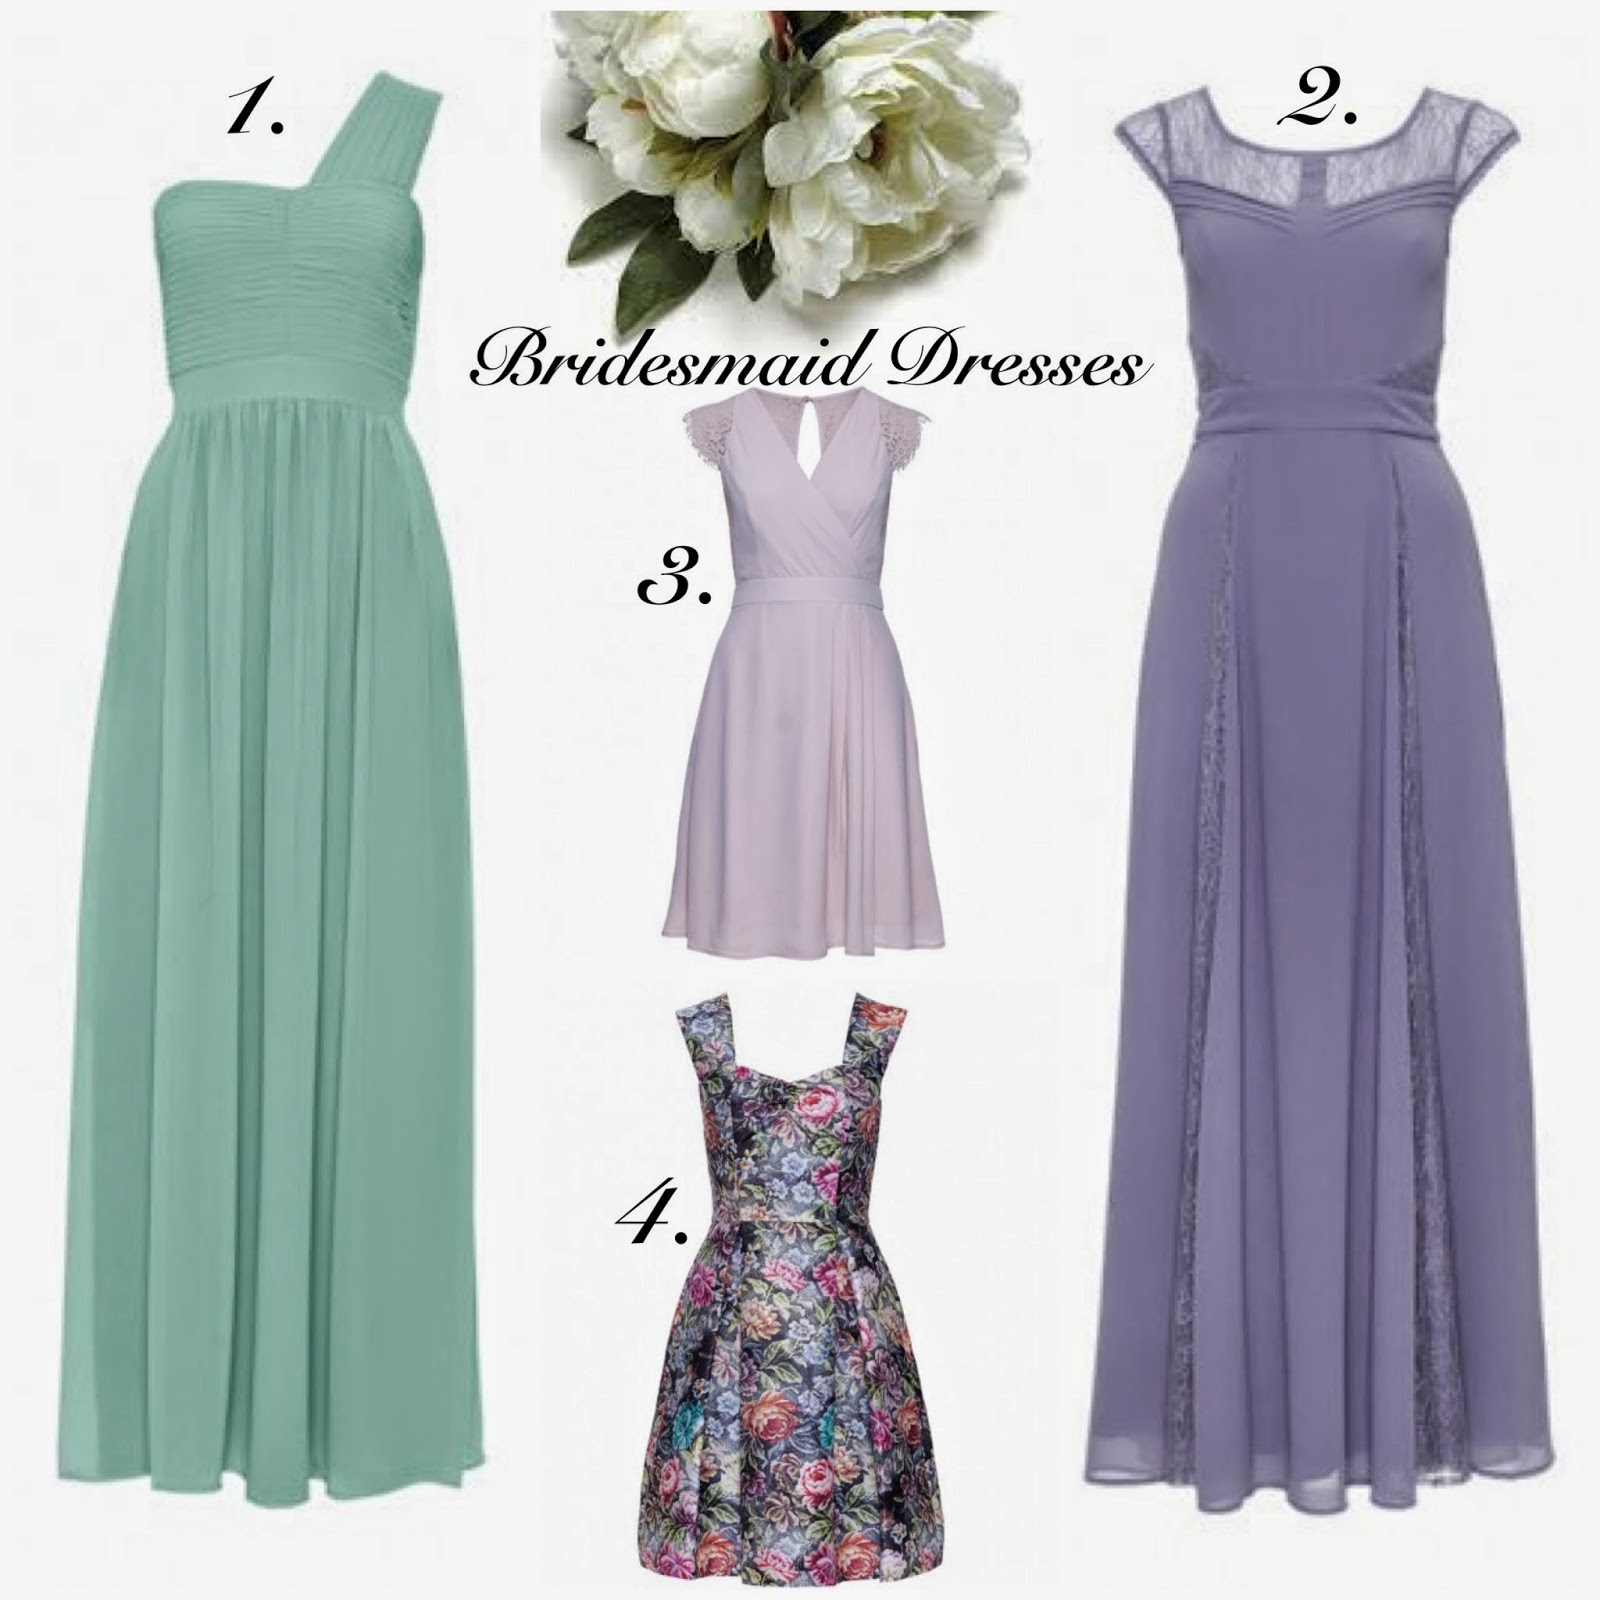 Review Bridesmaid Dresses, Australia Review Bridesmaid Dresses, bridesmaids dresses online, pastel bridesmaid dresses